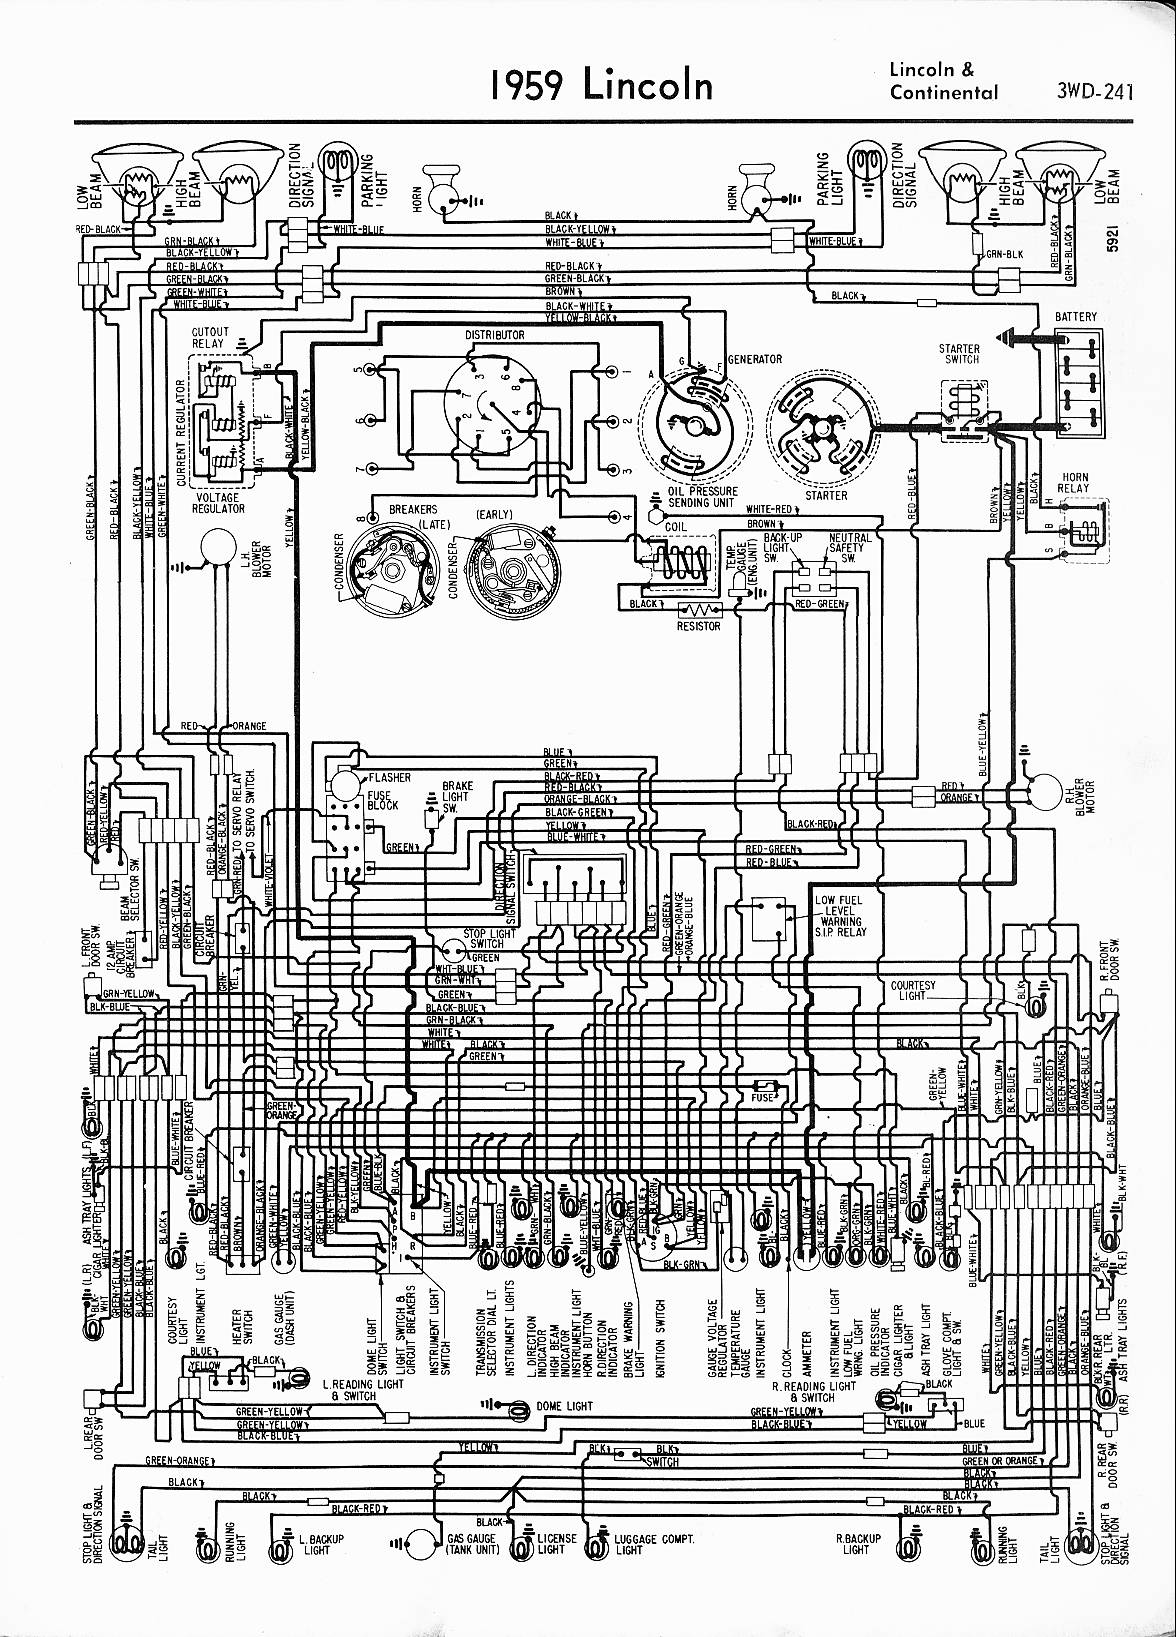 1972 lincoln wiring diagrams 1972 c20 wiring diagrams automotive